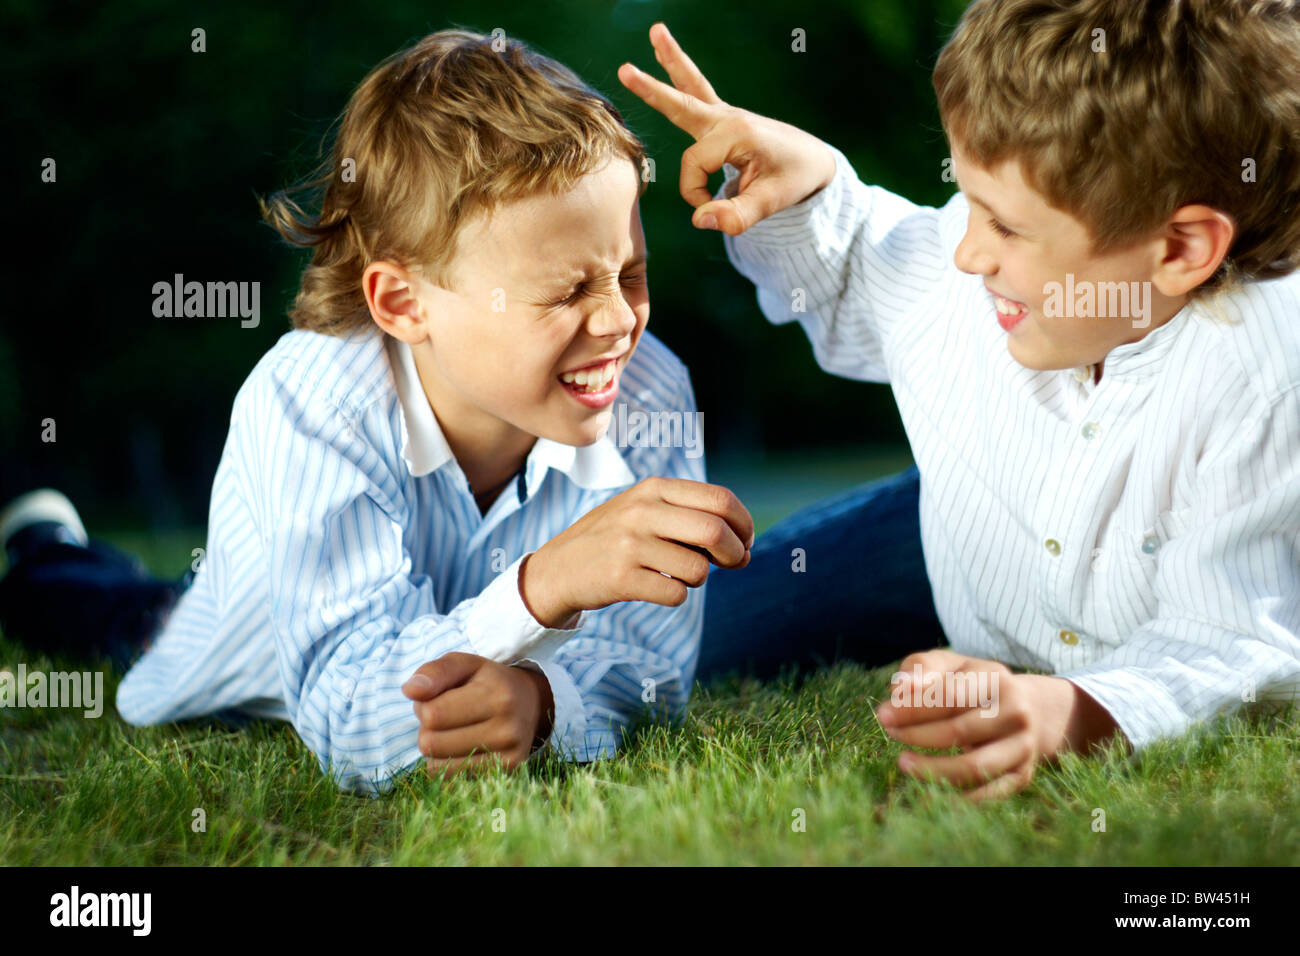 Portrait of happy boys playing jokes on grass in park - Stock Image